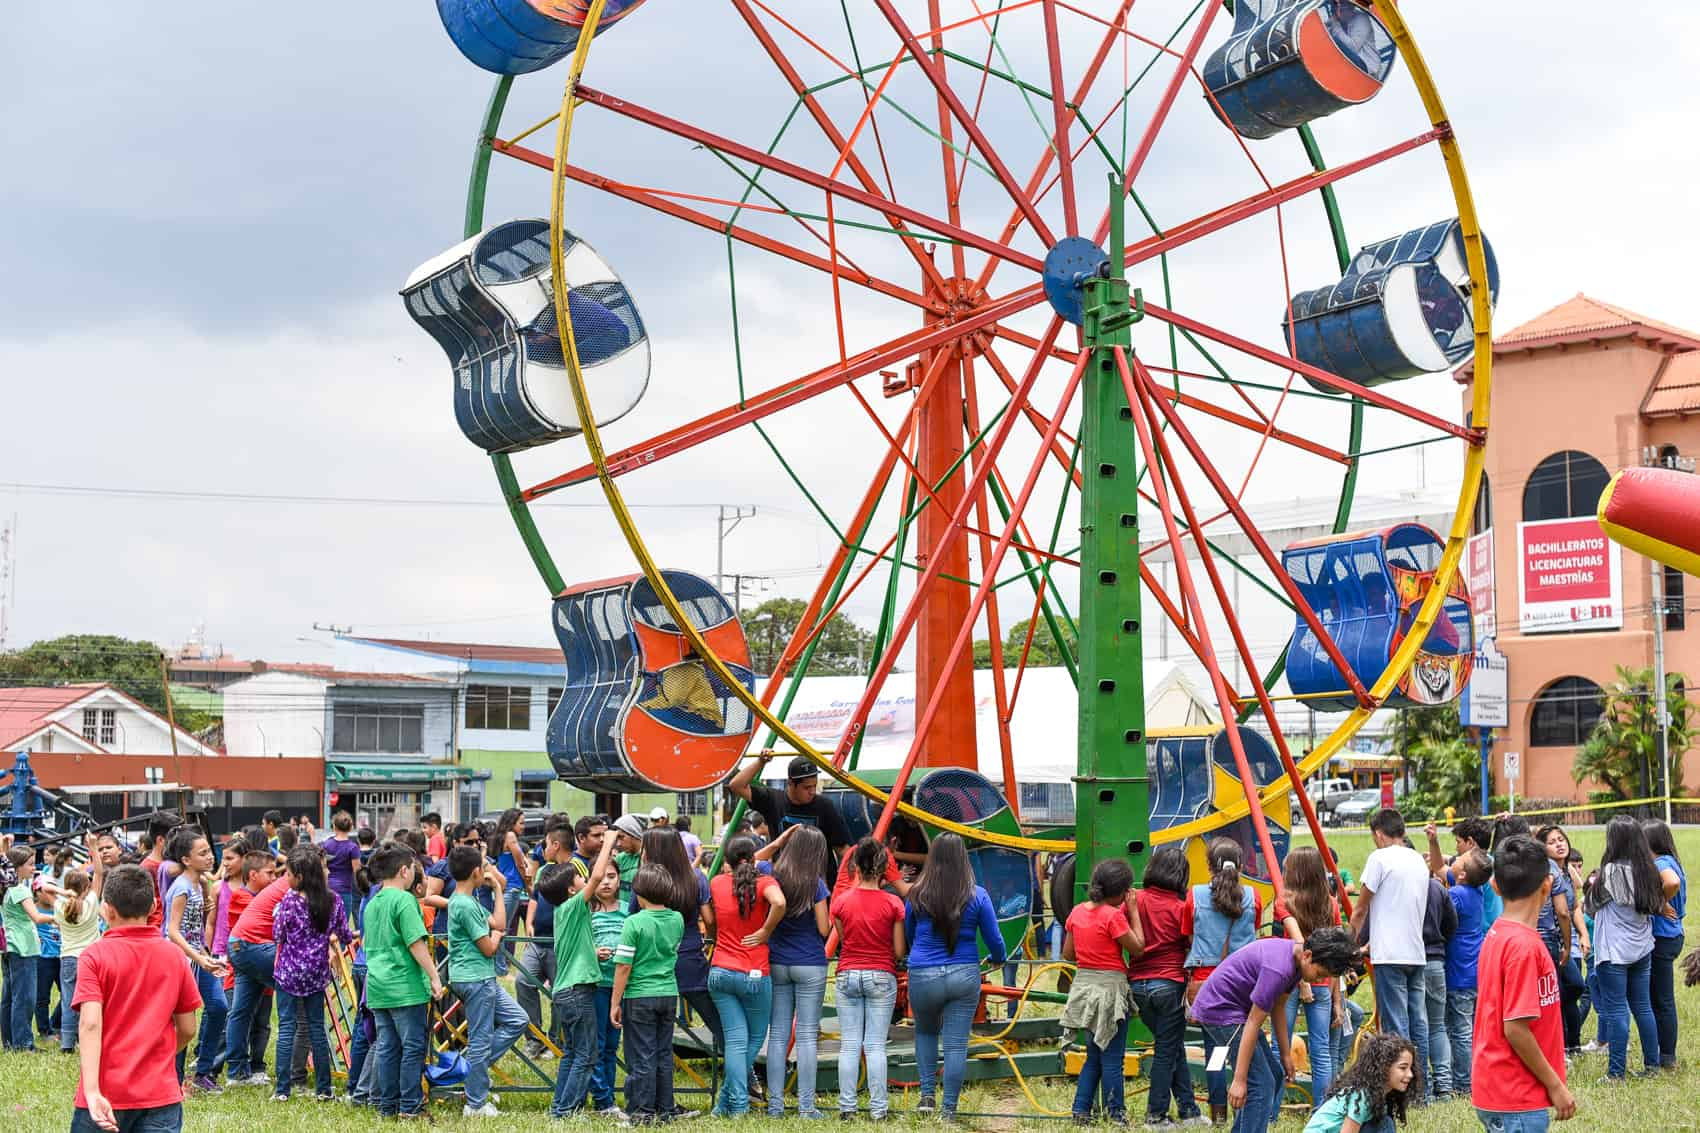 Students from the Franklin Roosevelt school in San Pedro de Montes de Oca, celebrated Children's Day at the plaza in from of the school with carnival rides like the Ferris Wheel.